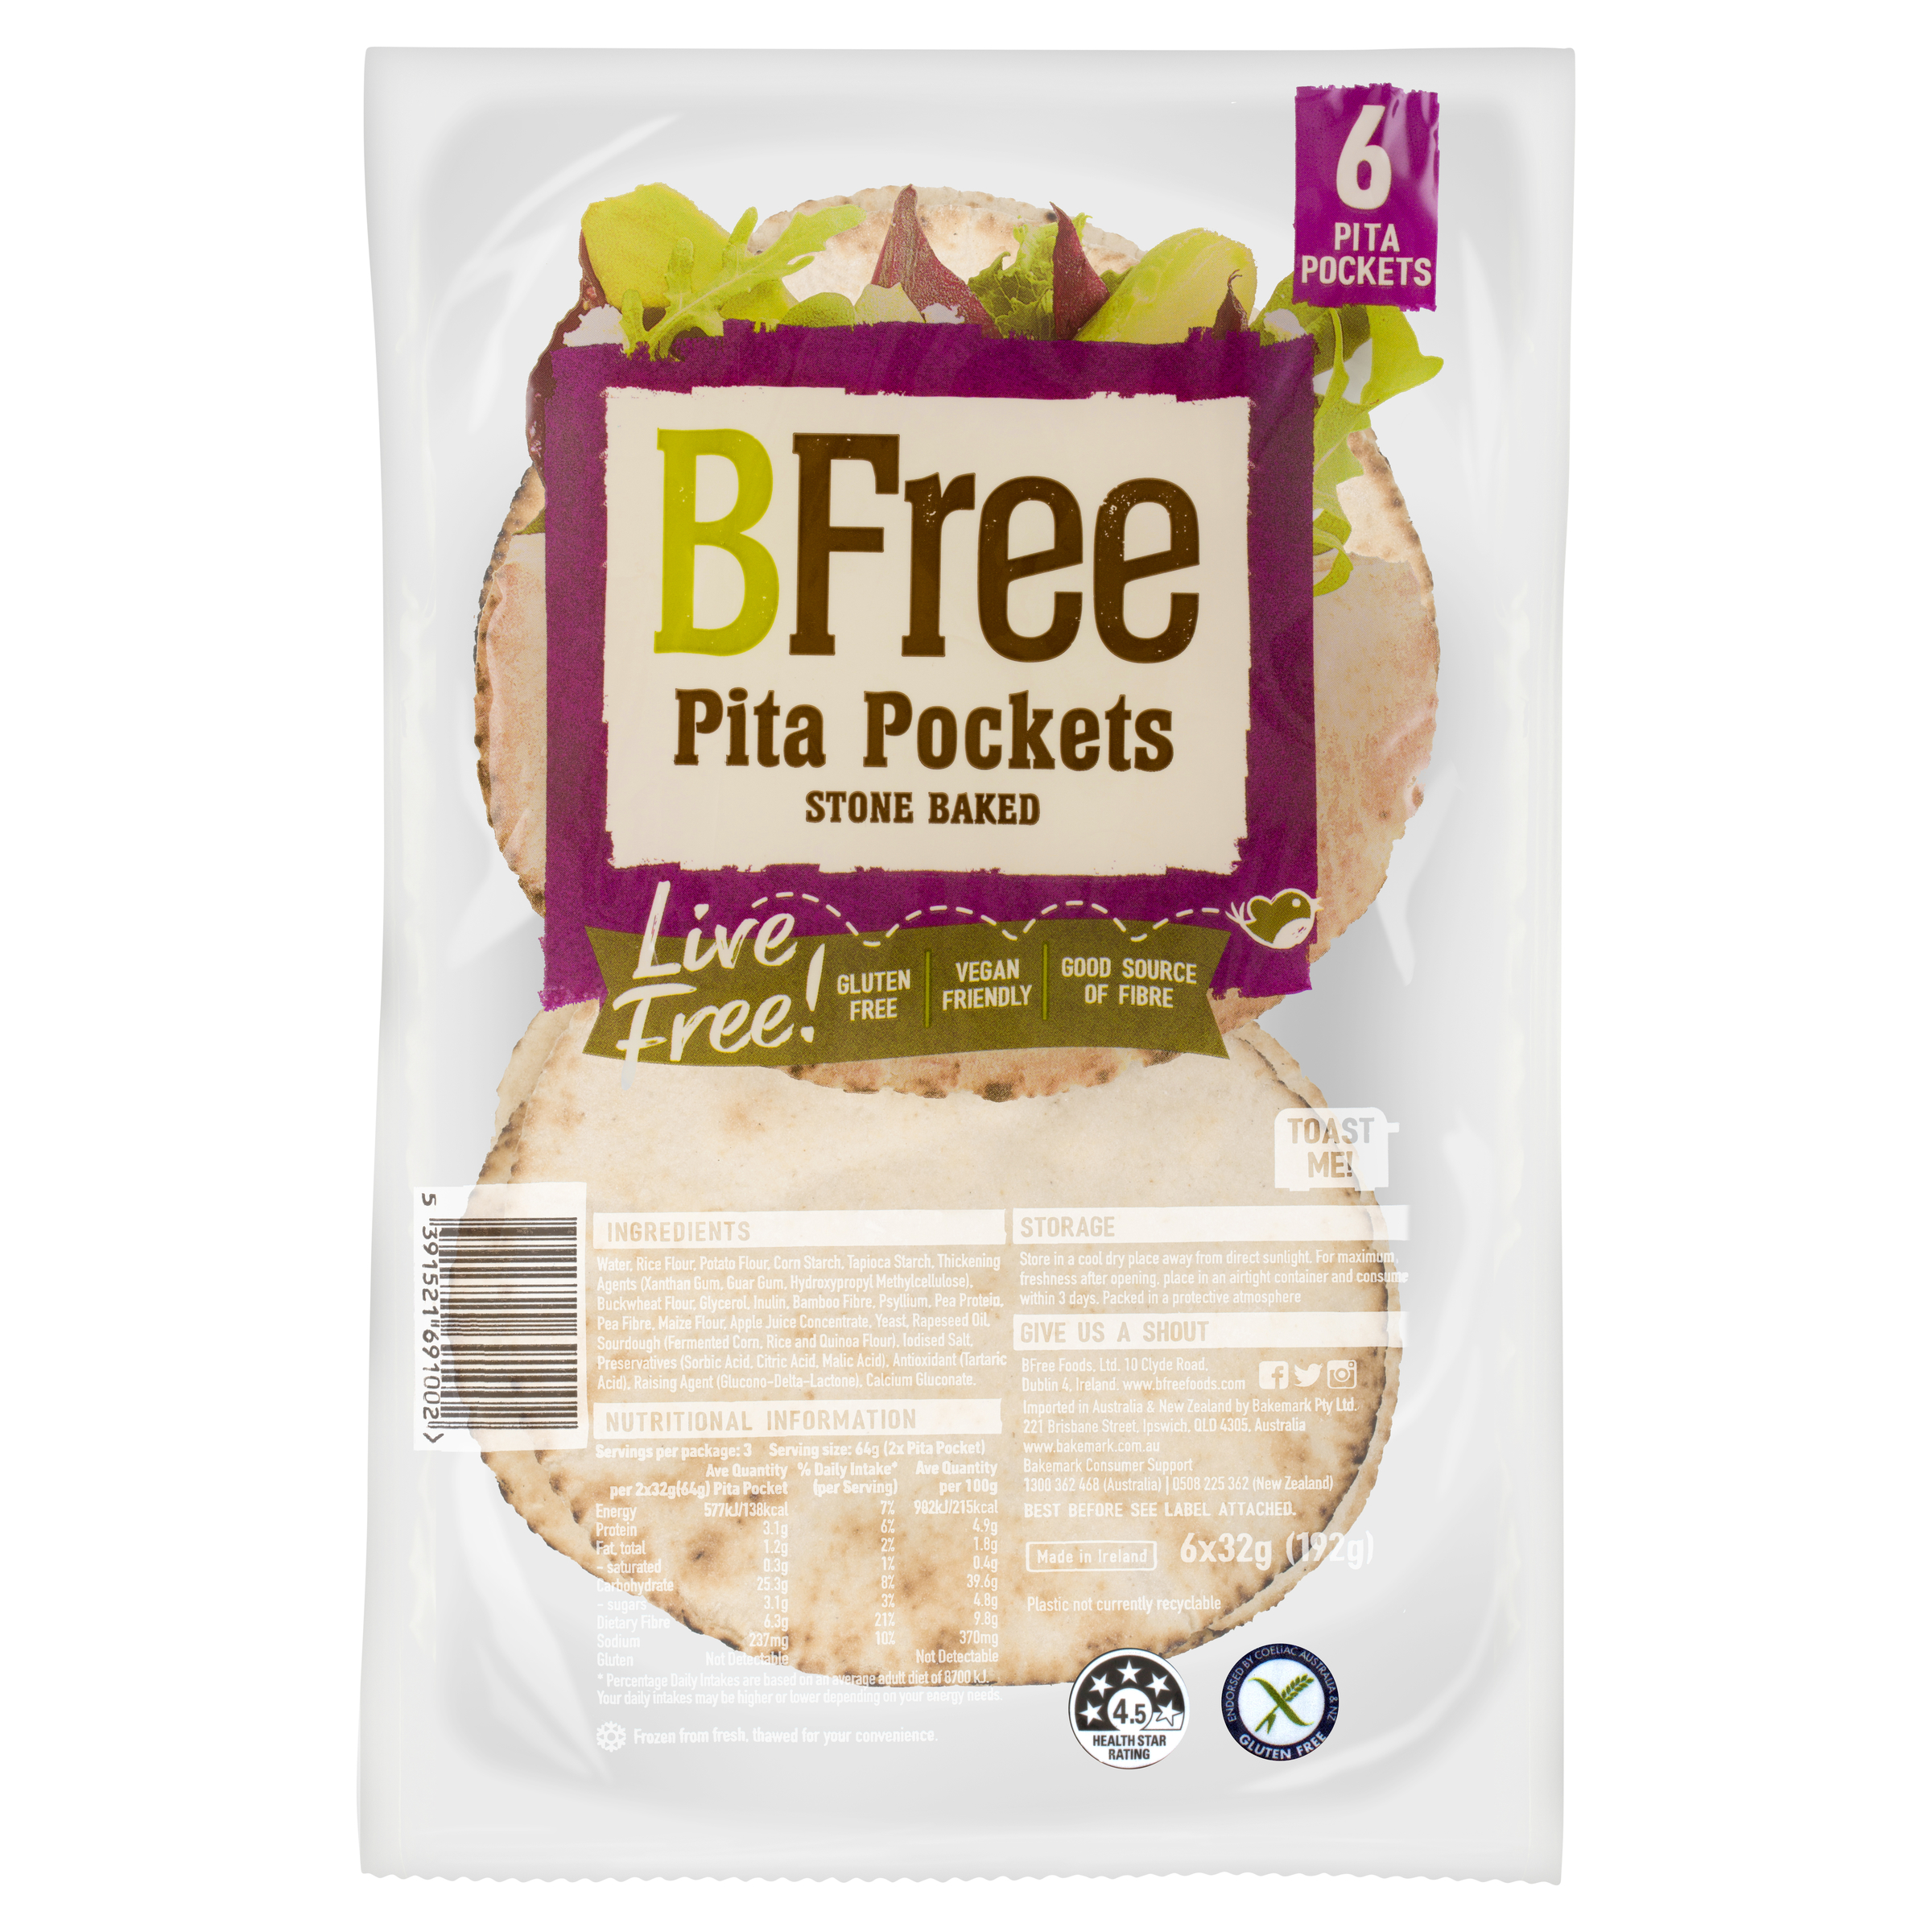 NEW!  BFree 6 Pita Pockets